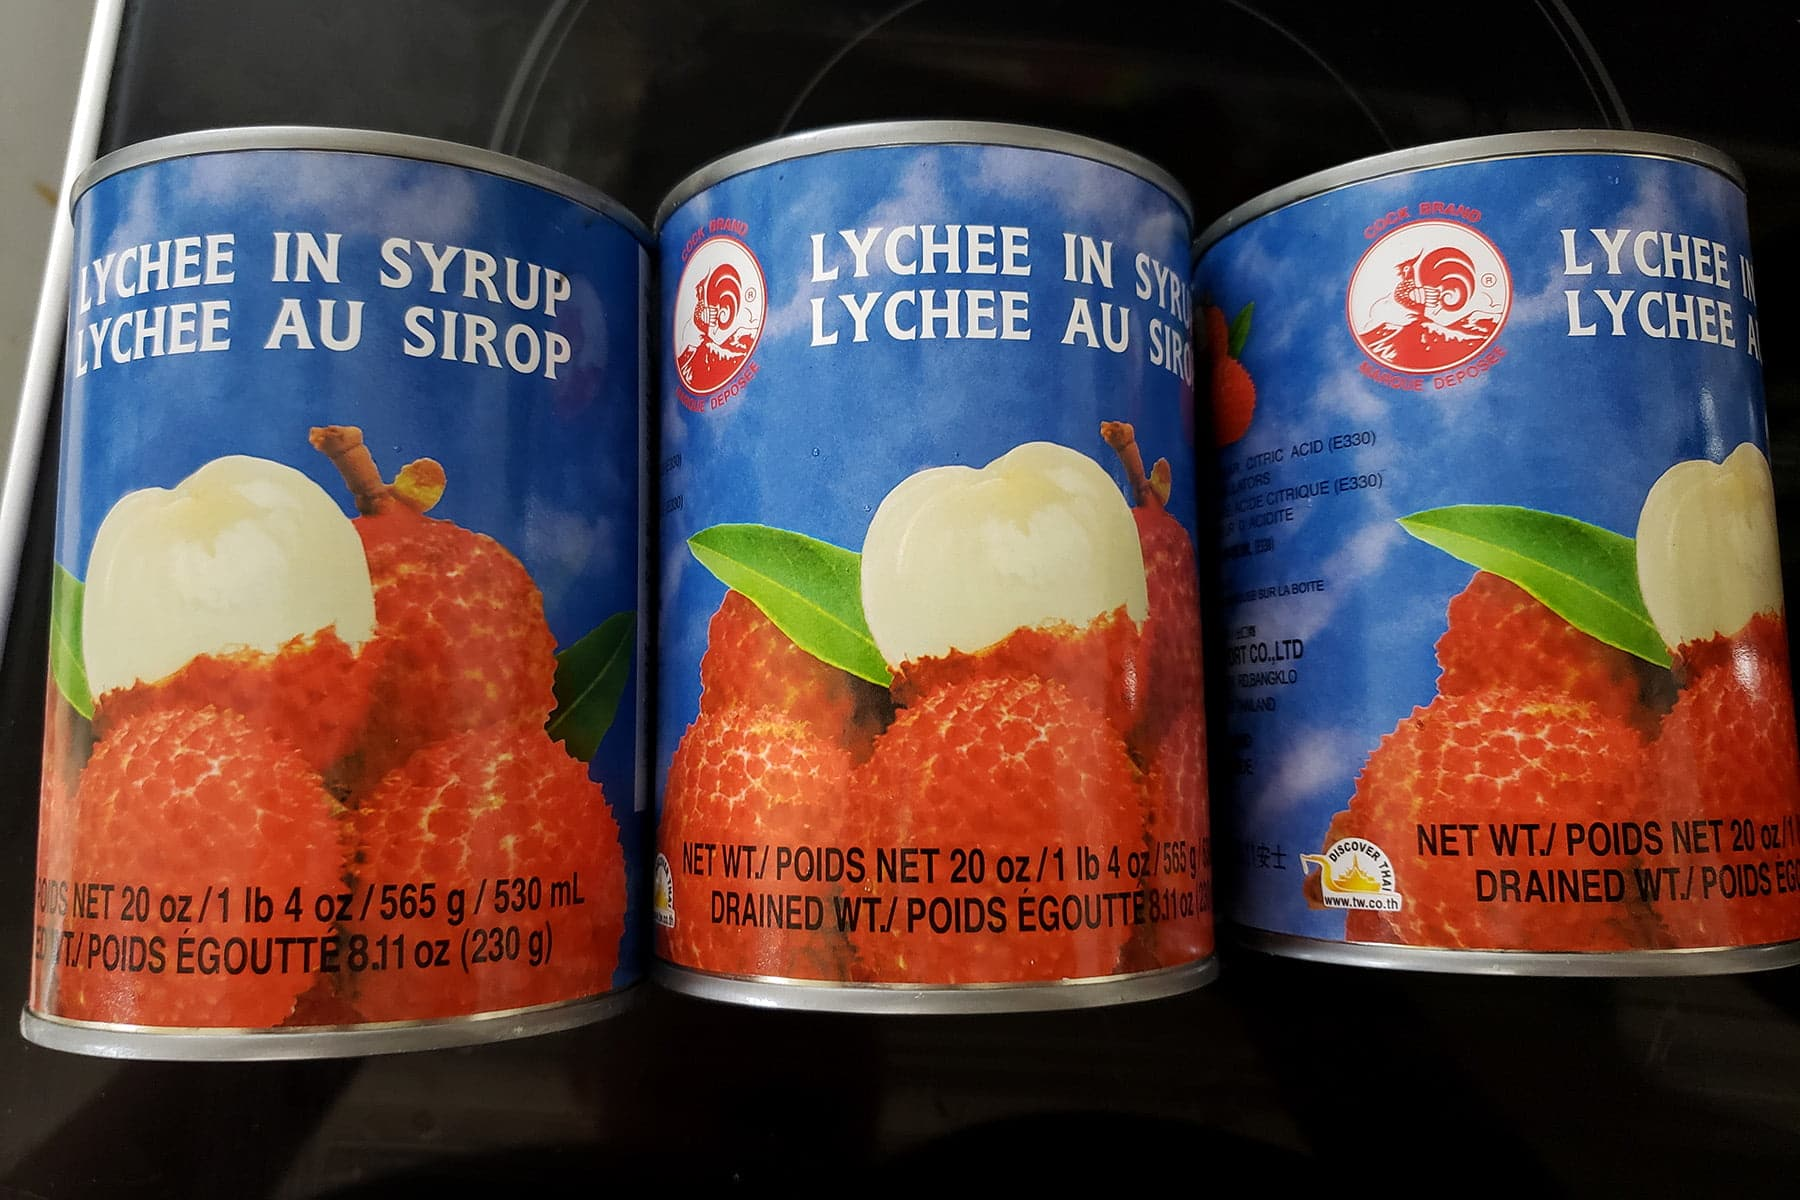 3 cans of lychees are arranged in a row,